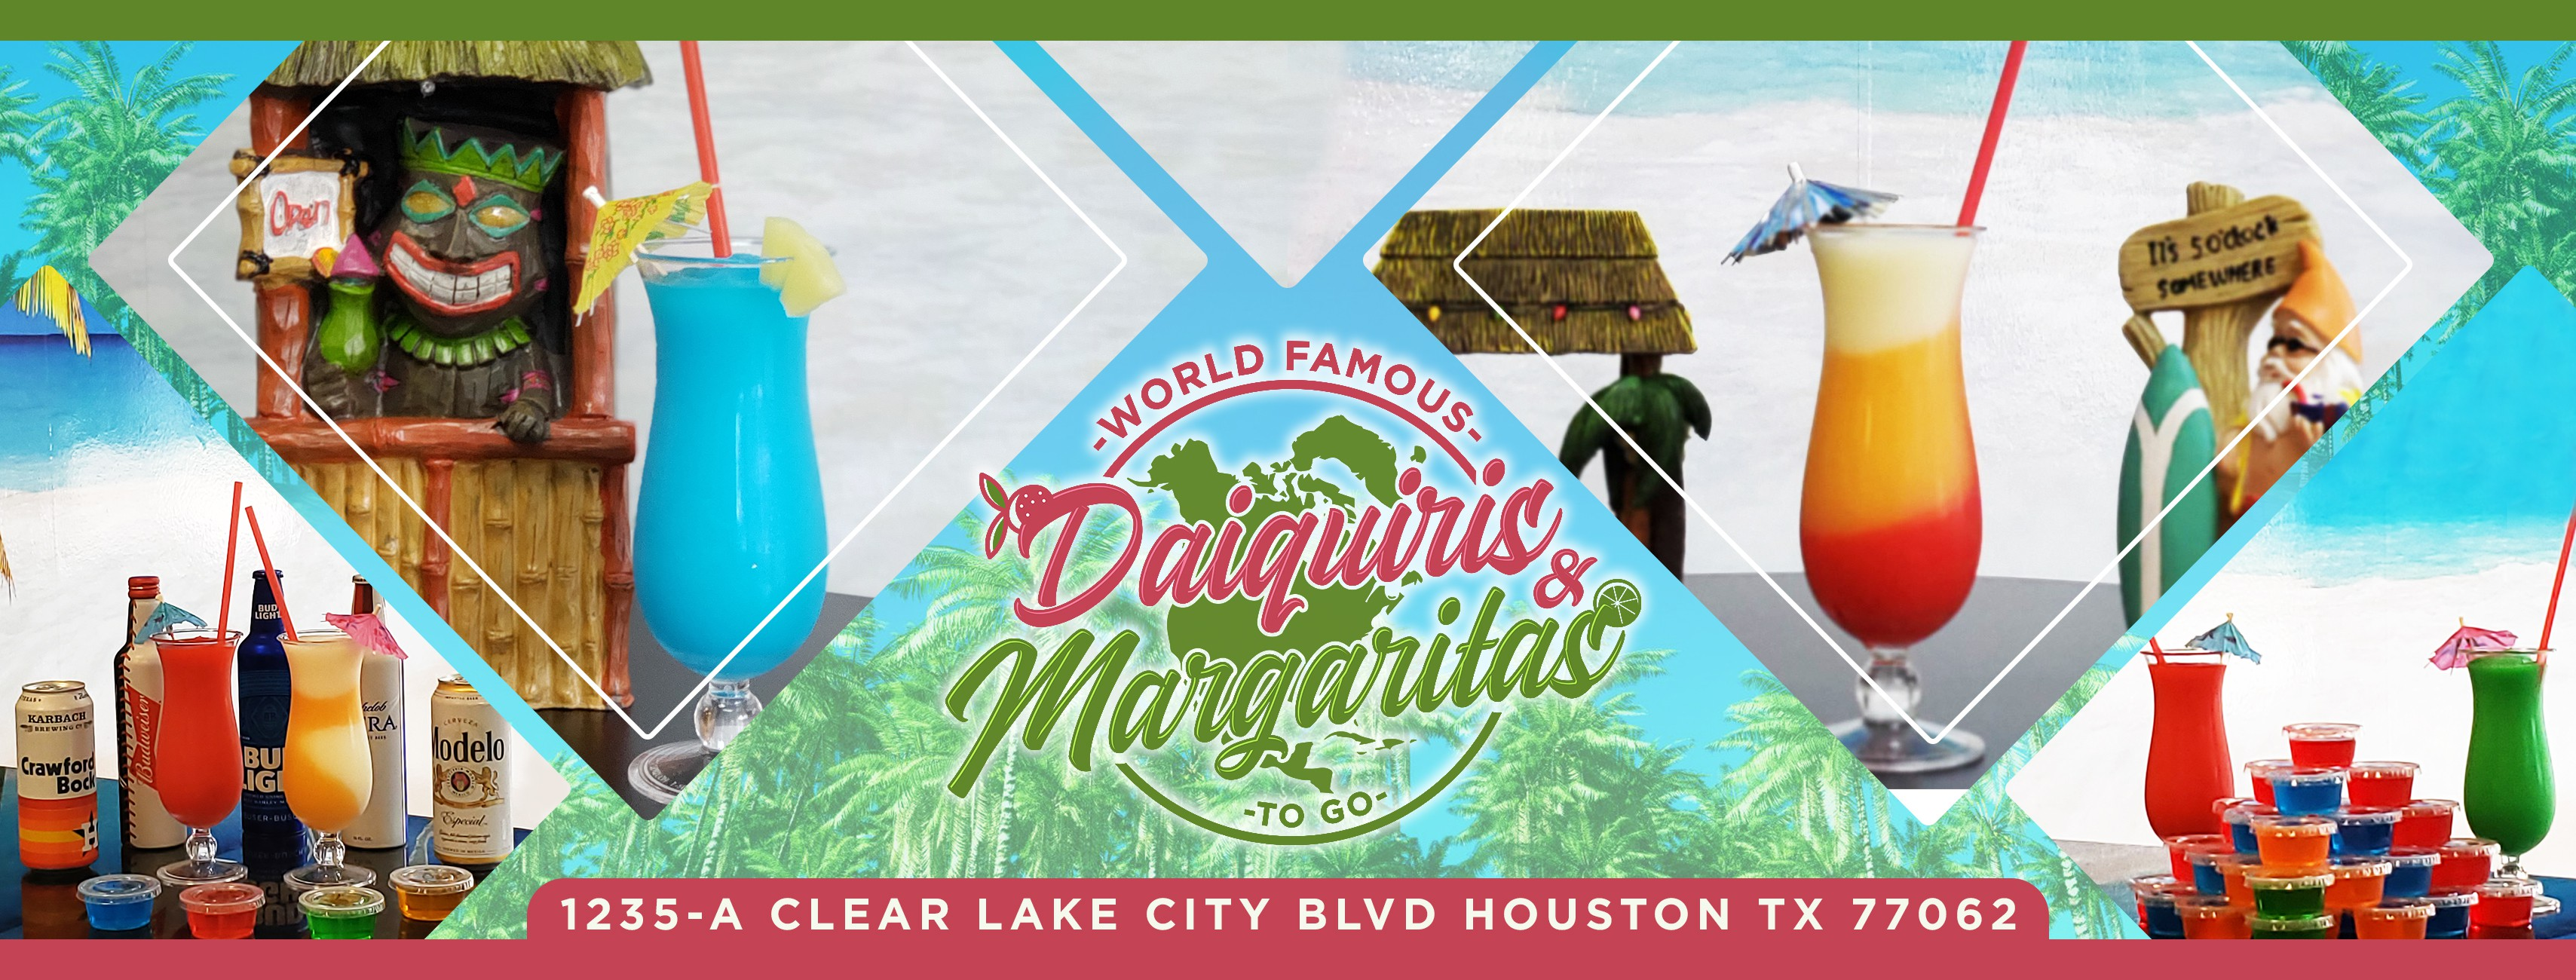 Facebook cover for World Famous Daiquiris